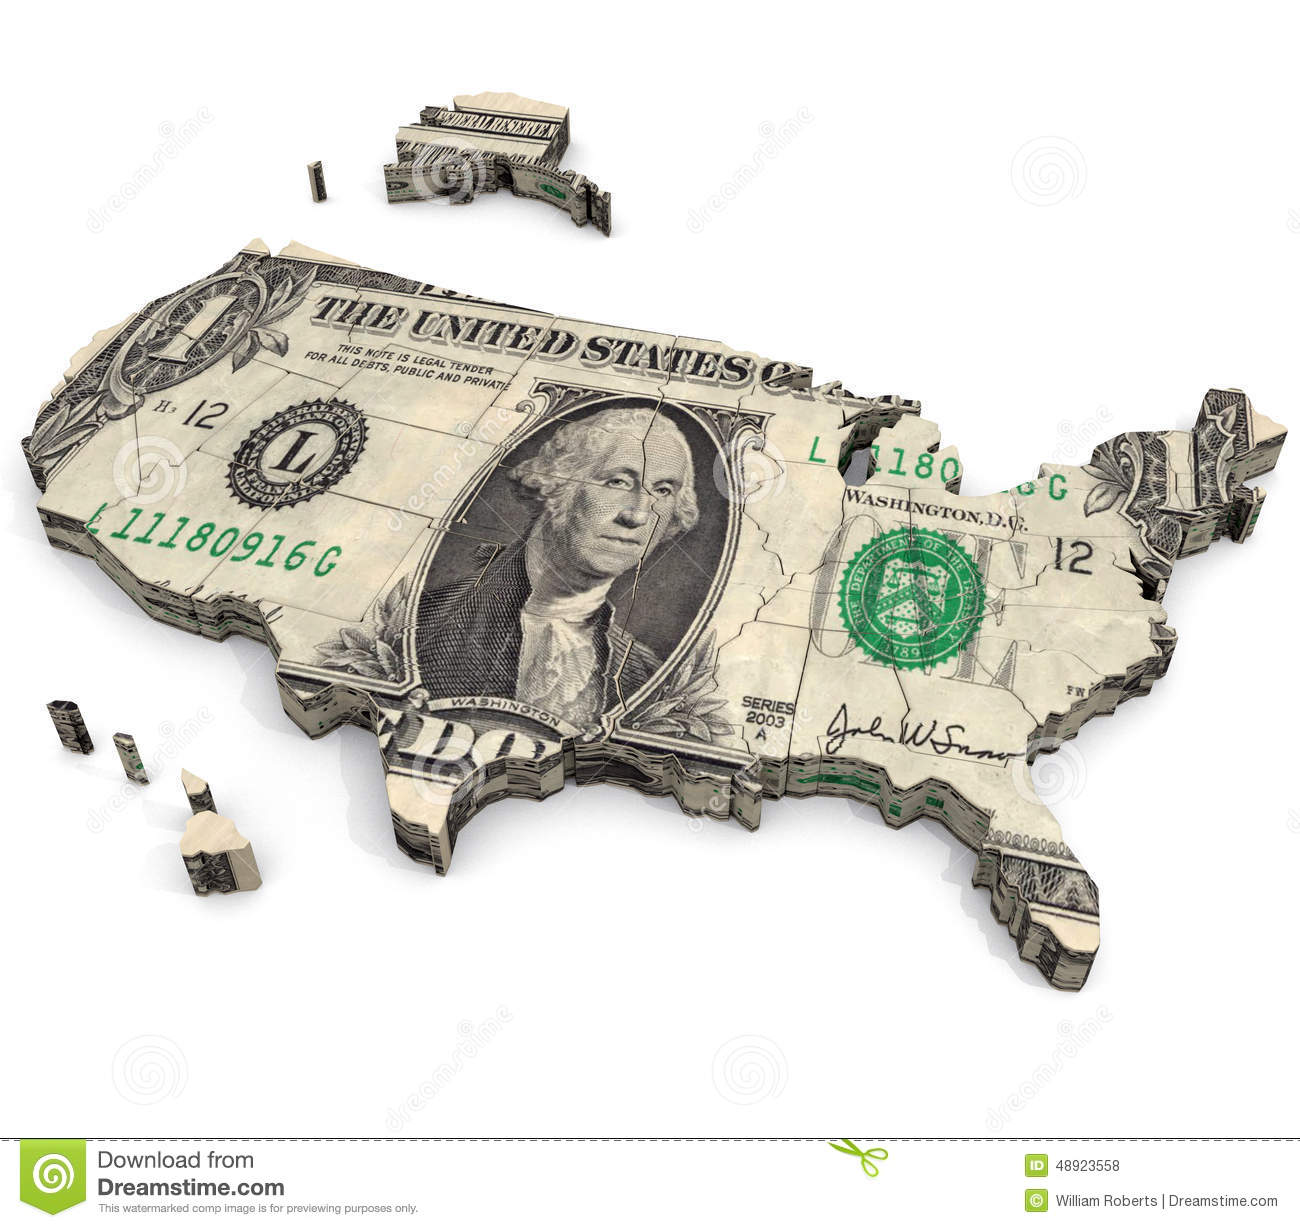 United States of Dollars stock illustration. Illustration of ... on puerto rico dollar, kelsey dollar, bajan dollar, technology dollar, australia's dollar, singapore dollar, canadian dollar, snowflake dollar, 2014 us dollar, lizzie dollar, laos dollar, new taiwan dollar, us treasury dollar, professional dollar, world trade dollar, ruble dollar, us hundred dollar, argentine dollar, new zealand dollar, botswana dollar,